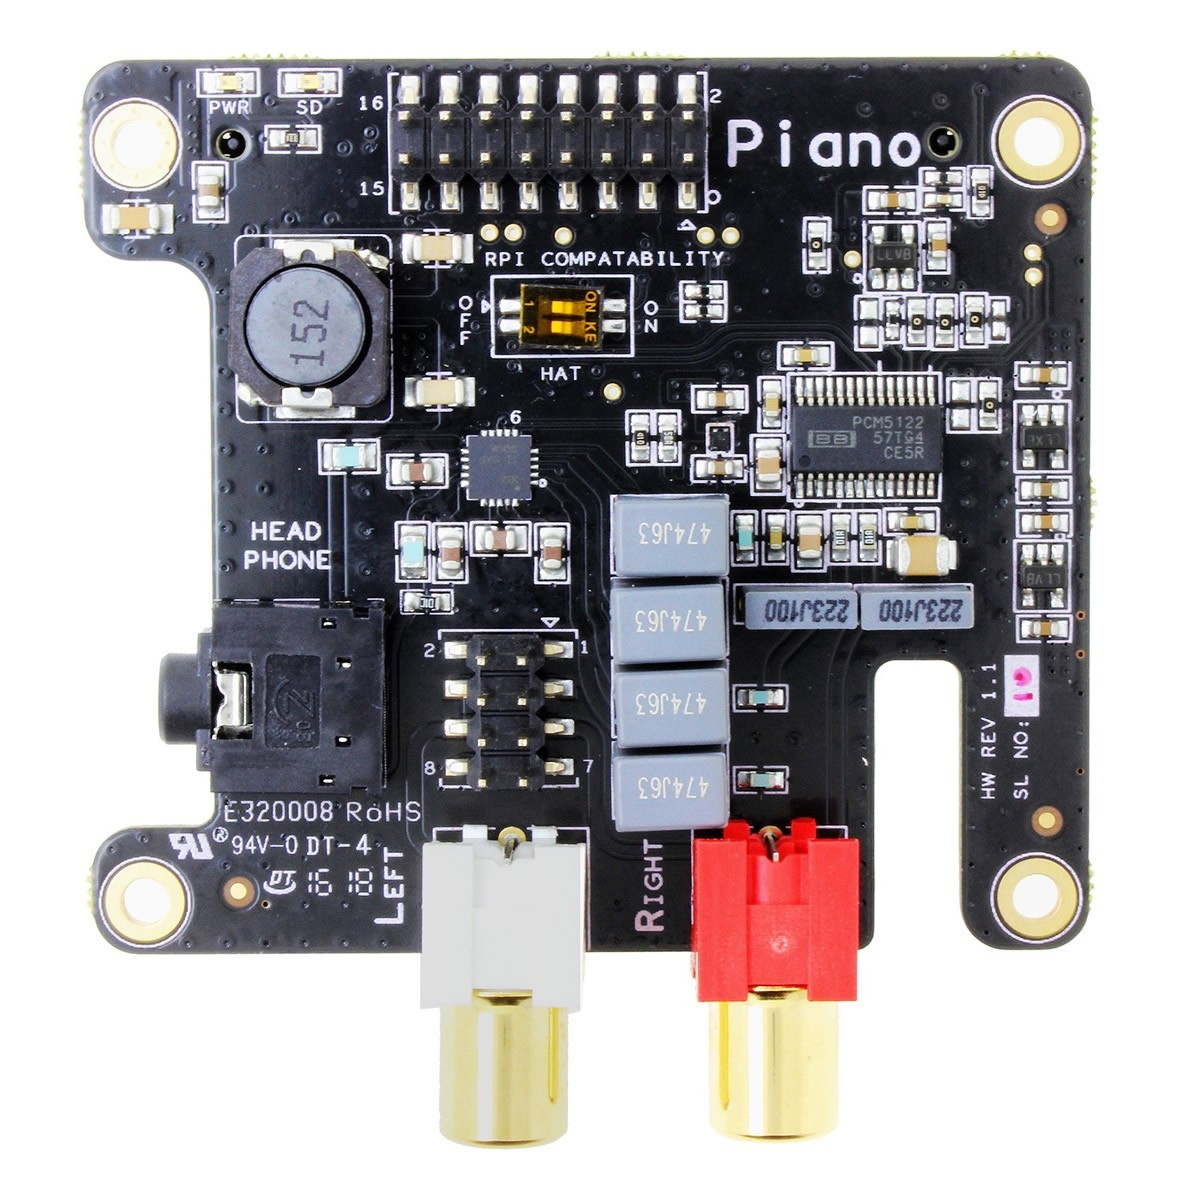 ALLO PIANO HIFI DAC PCM5122 32Bit/384kHz / Amplificateur casque TPA6133A2